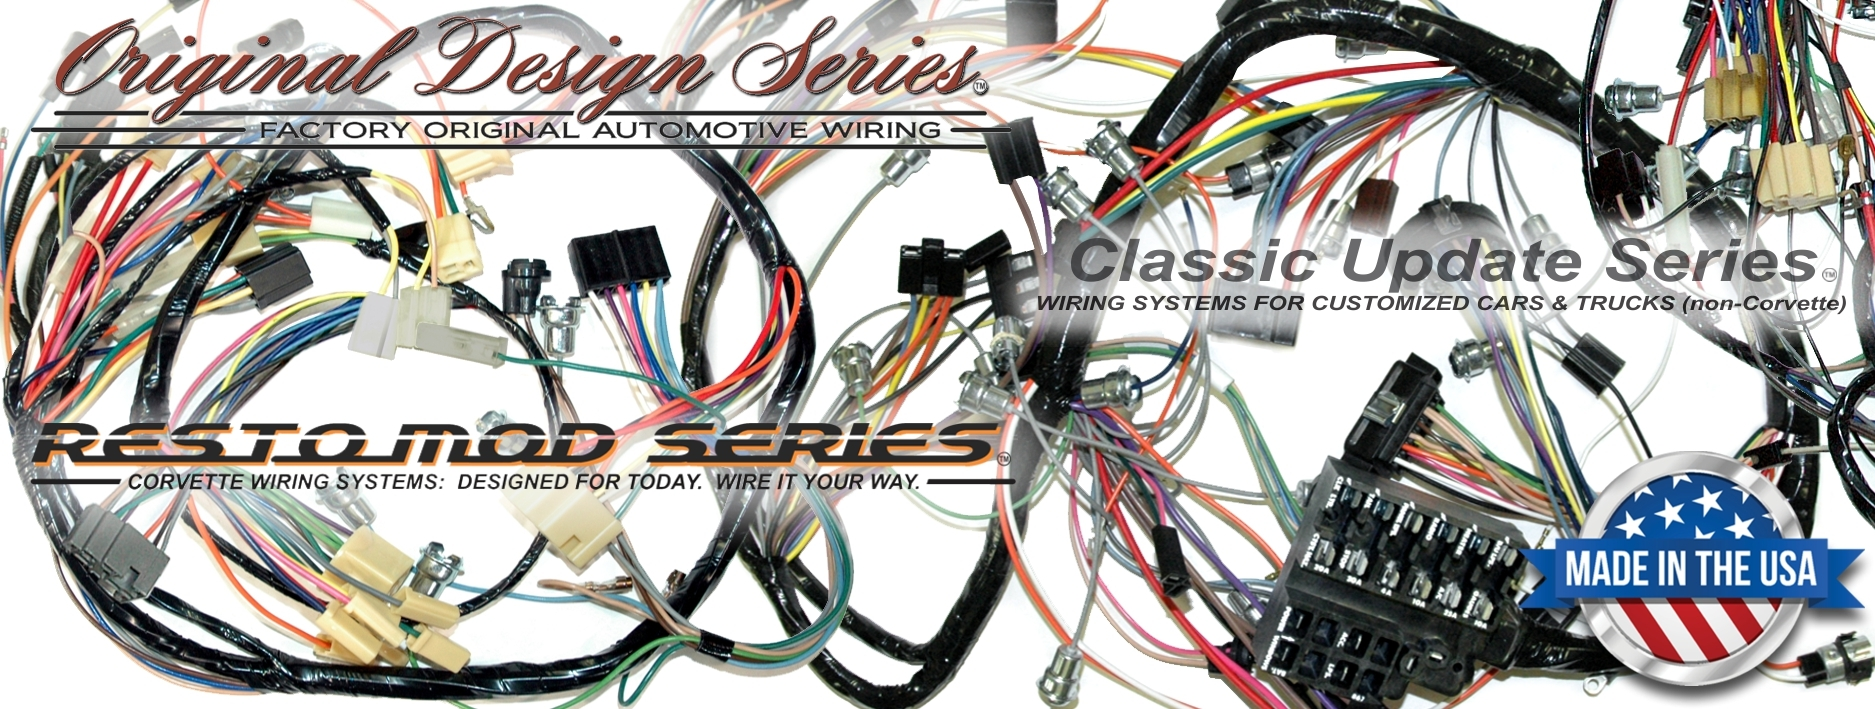 Exact Oem Reproduction Wiring Harnesses And Restomod Systems 1969 Ford F100 Fuse Box Individual Complete